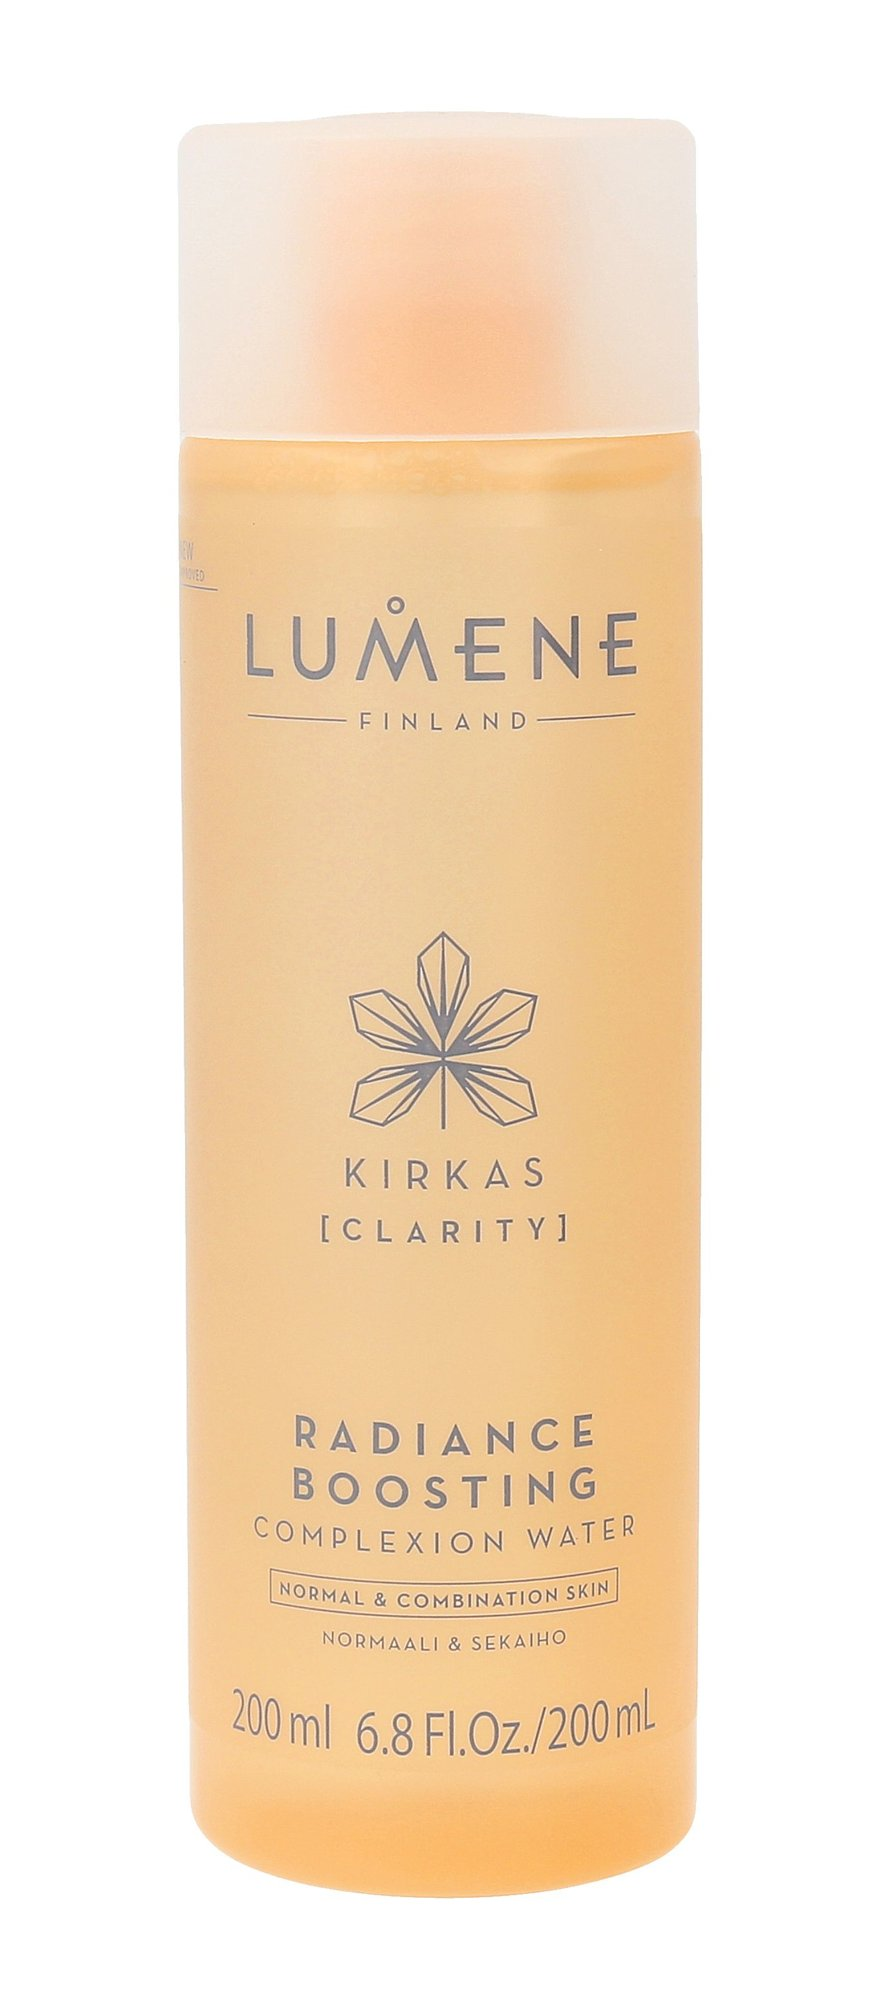 Lumene Clarity Radiance Boosting Complexion Water Cosmetic 200ml